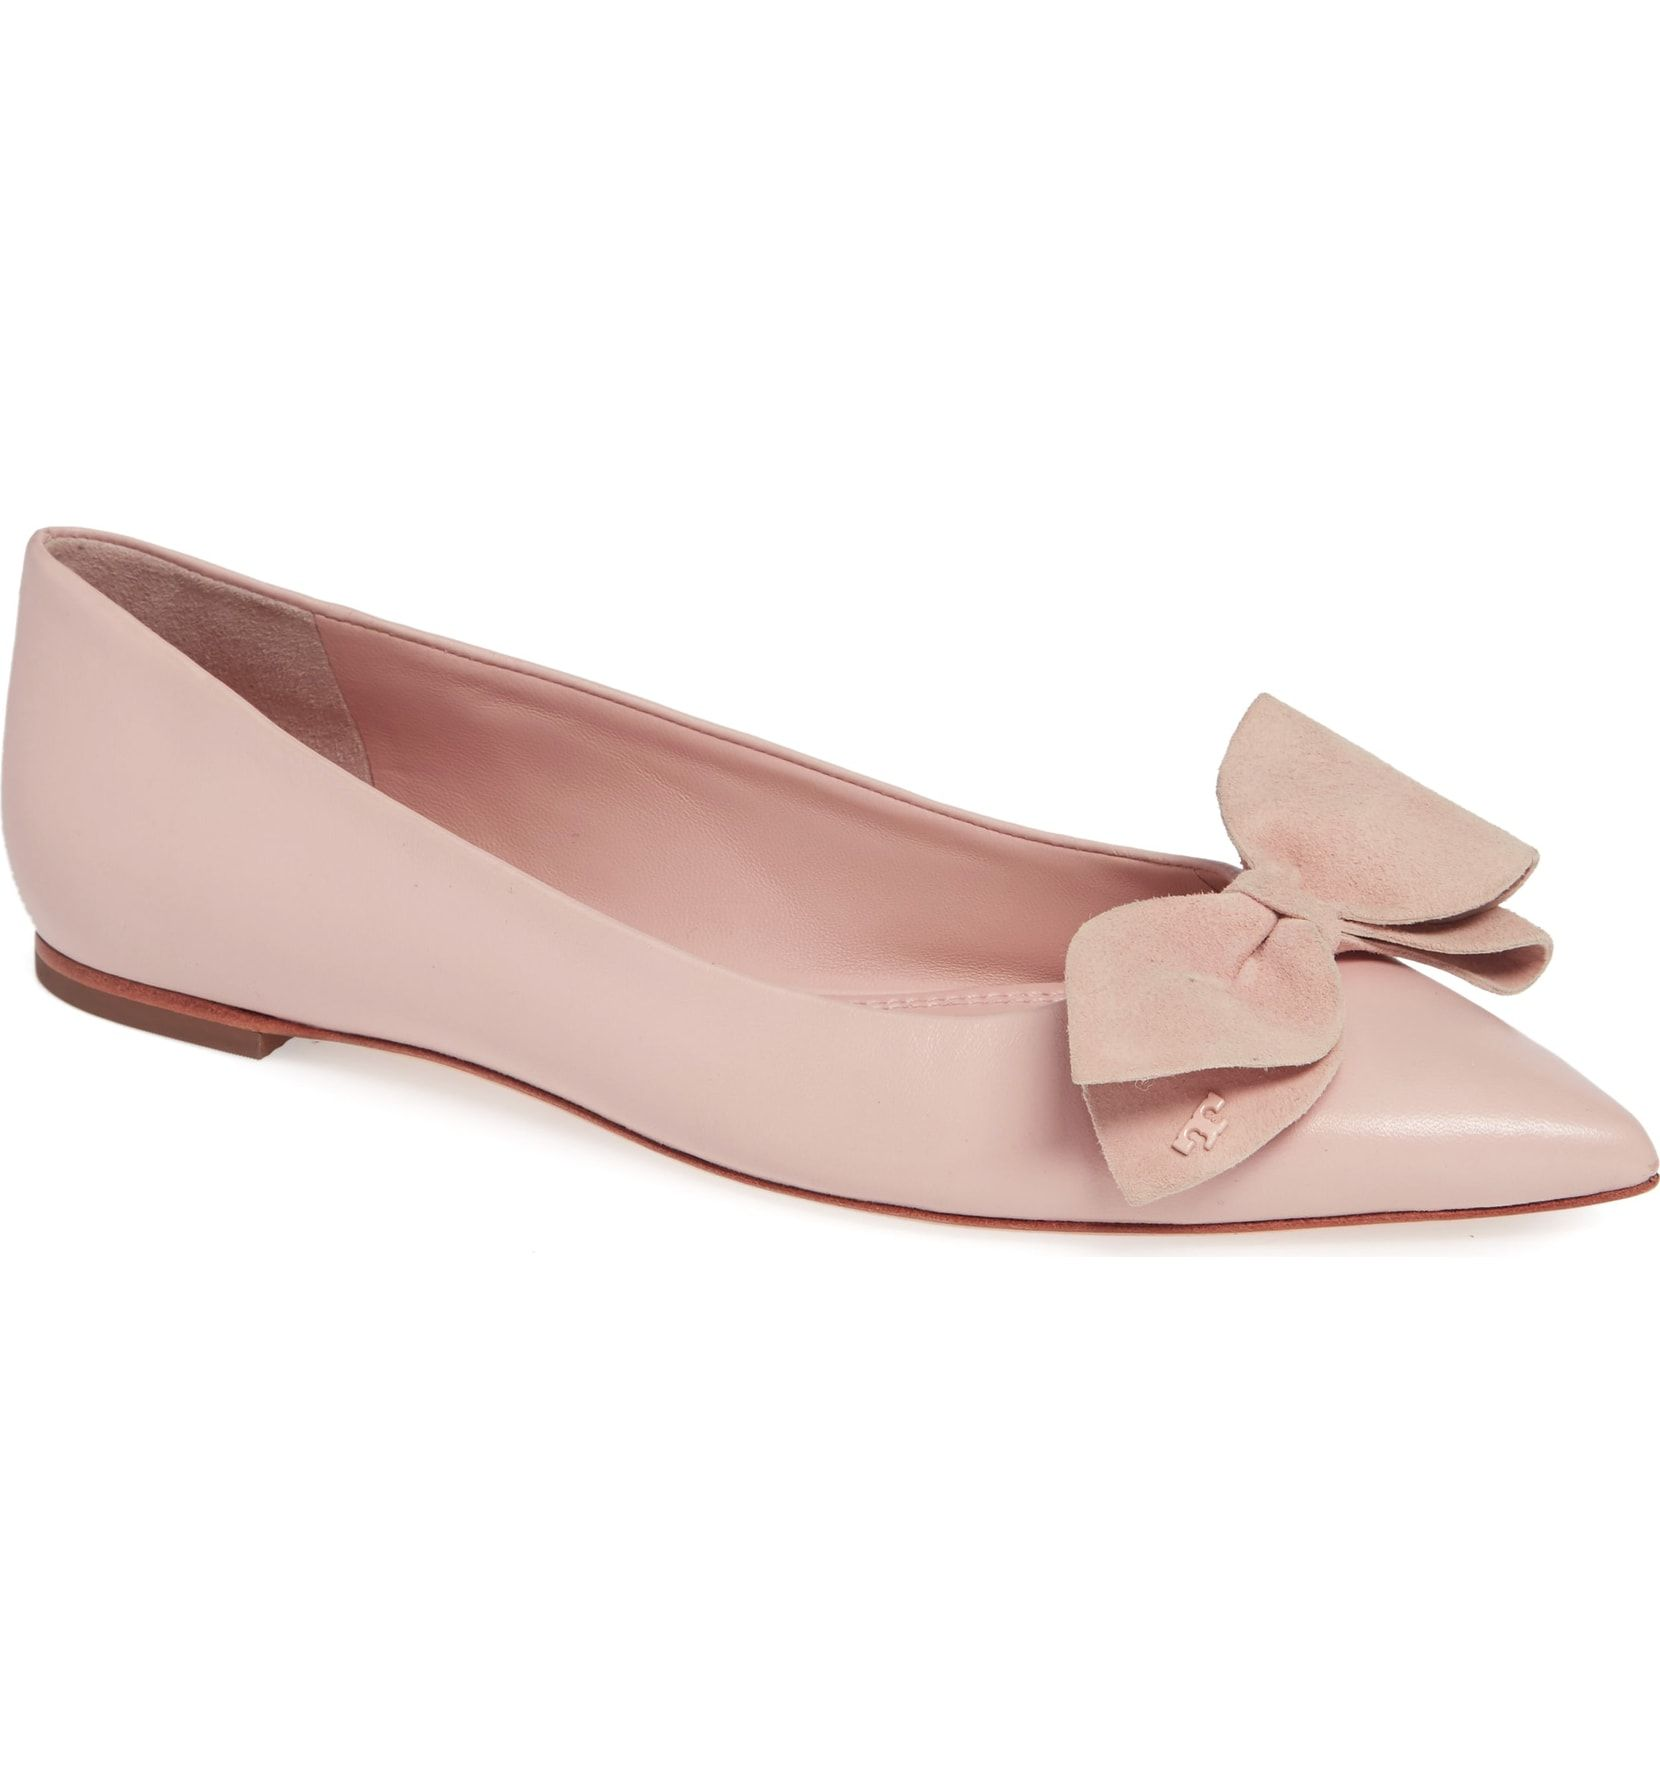 cdc00852771 Tory Burch Rosalind Bow Pointy Toe Flat - Sea Shell Pink